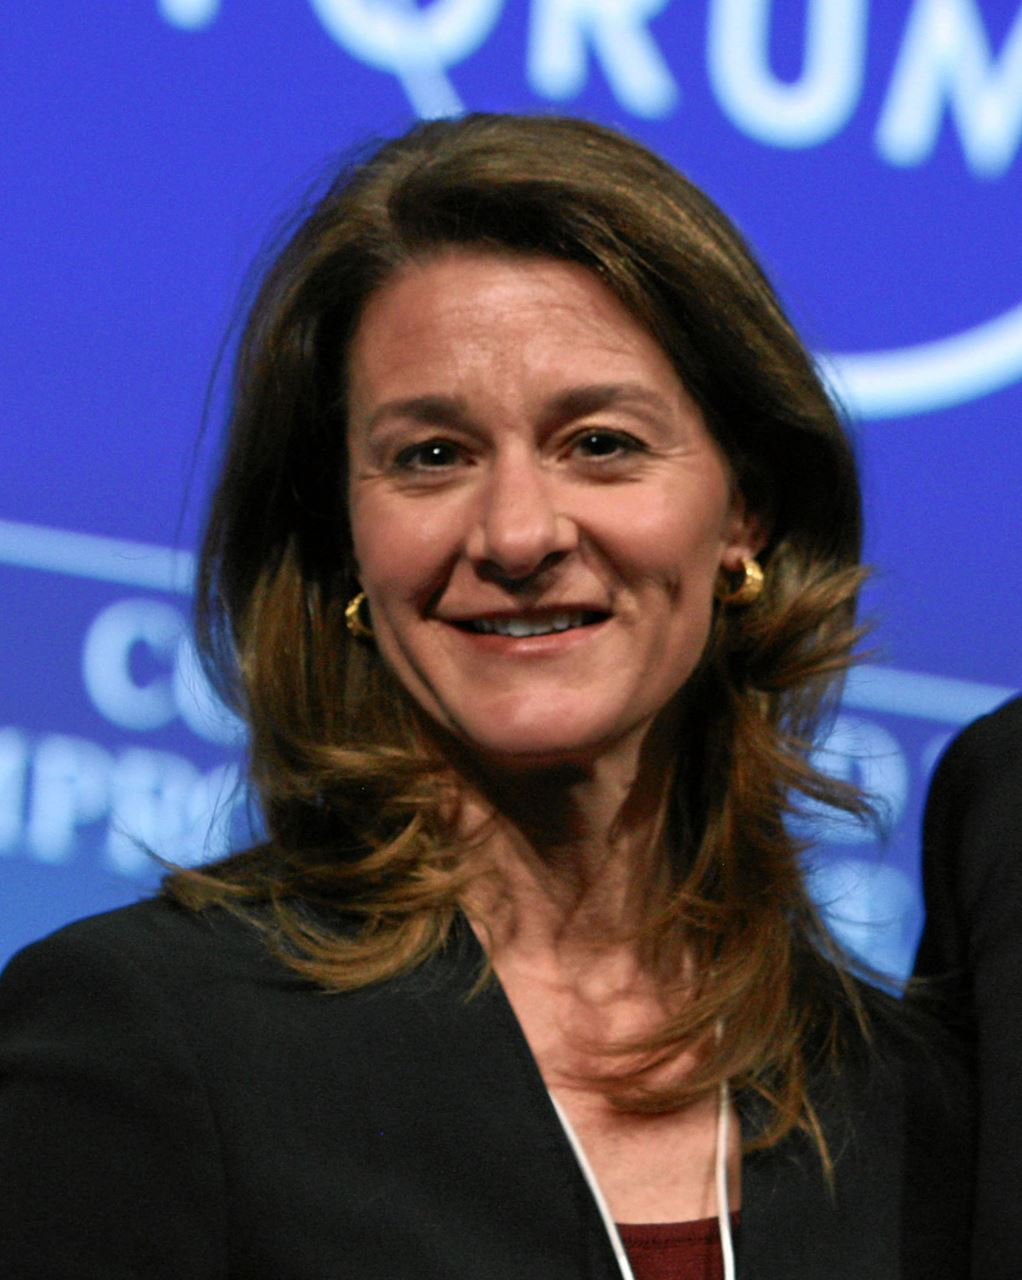 Picture of 2019 MY HERO Global Educator Award Winner Melinda Gates